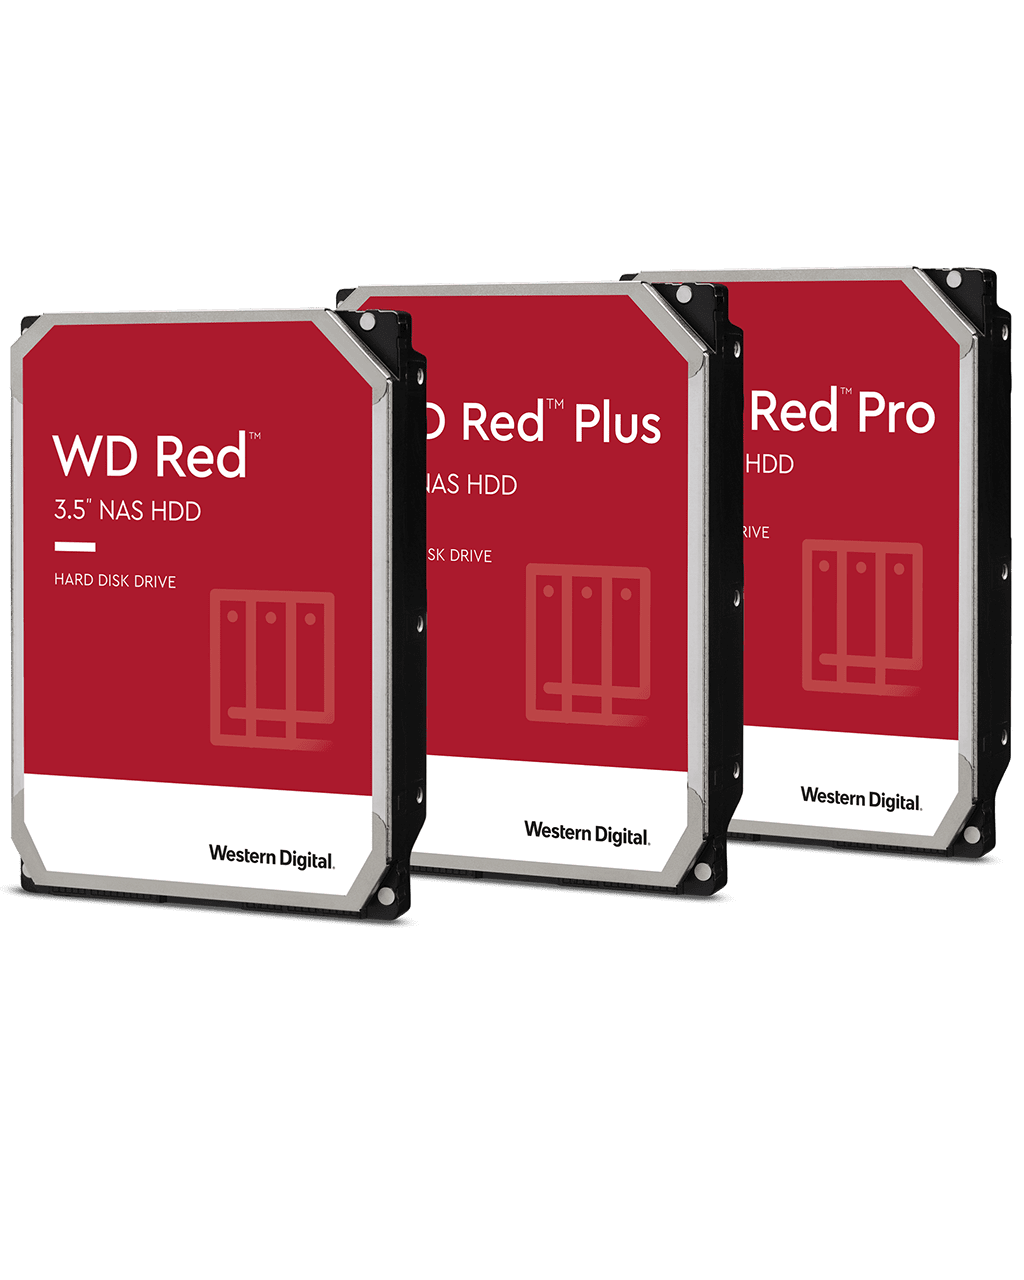 main-features-wd-red-hdd-western-digital